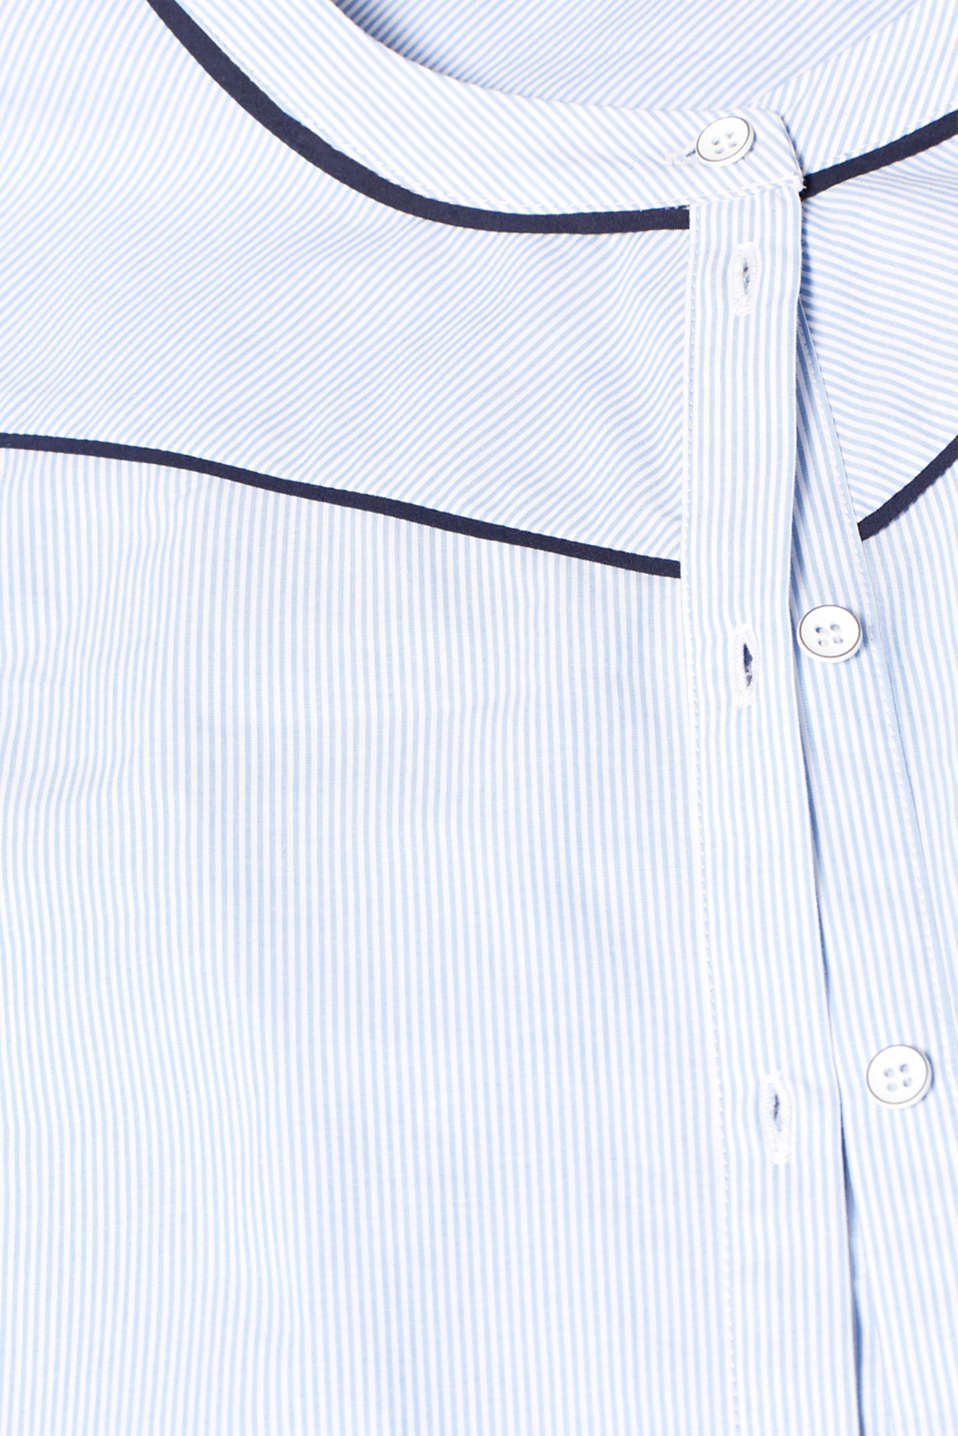 Blouse with piping, 100% cotton, LIGHT BLUE, detail image number 4